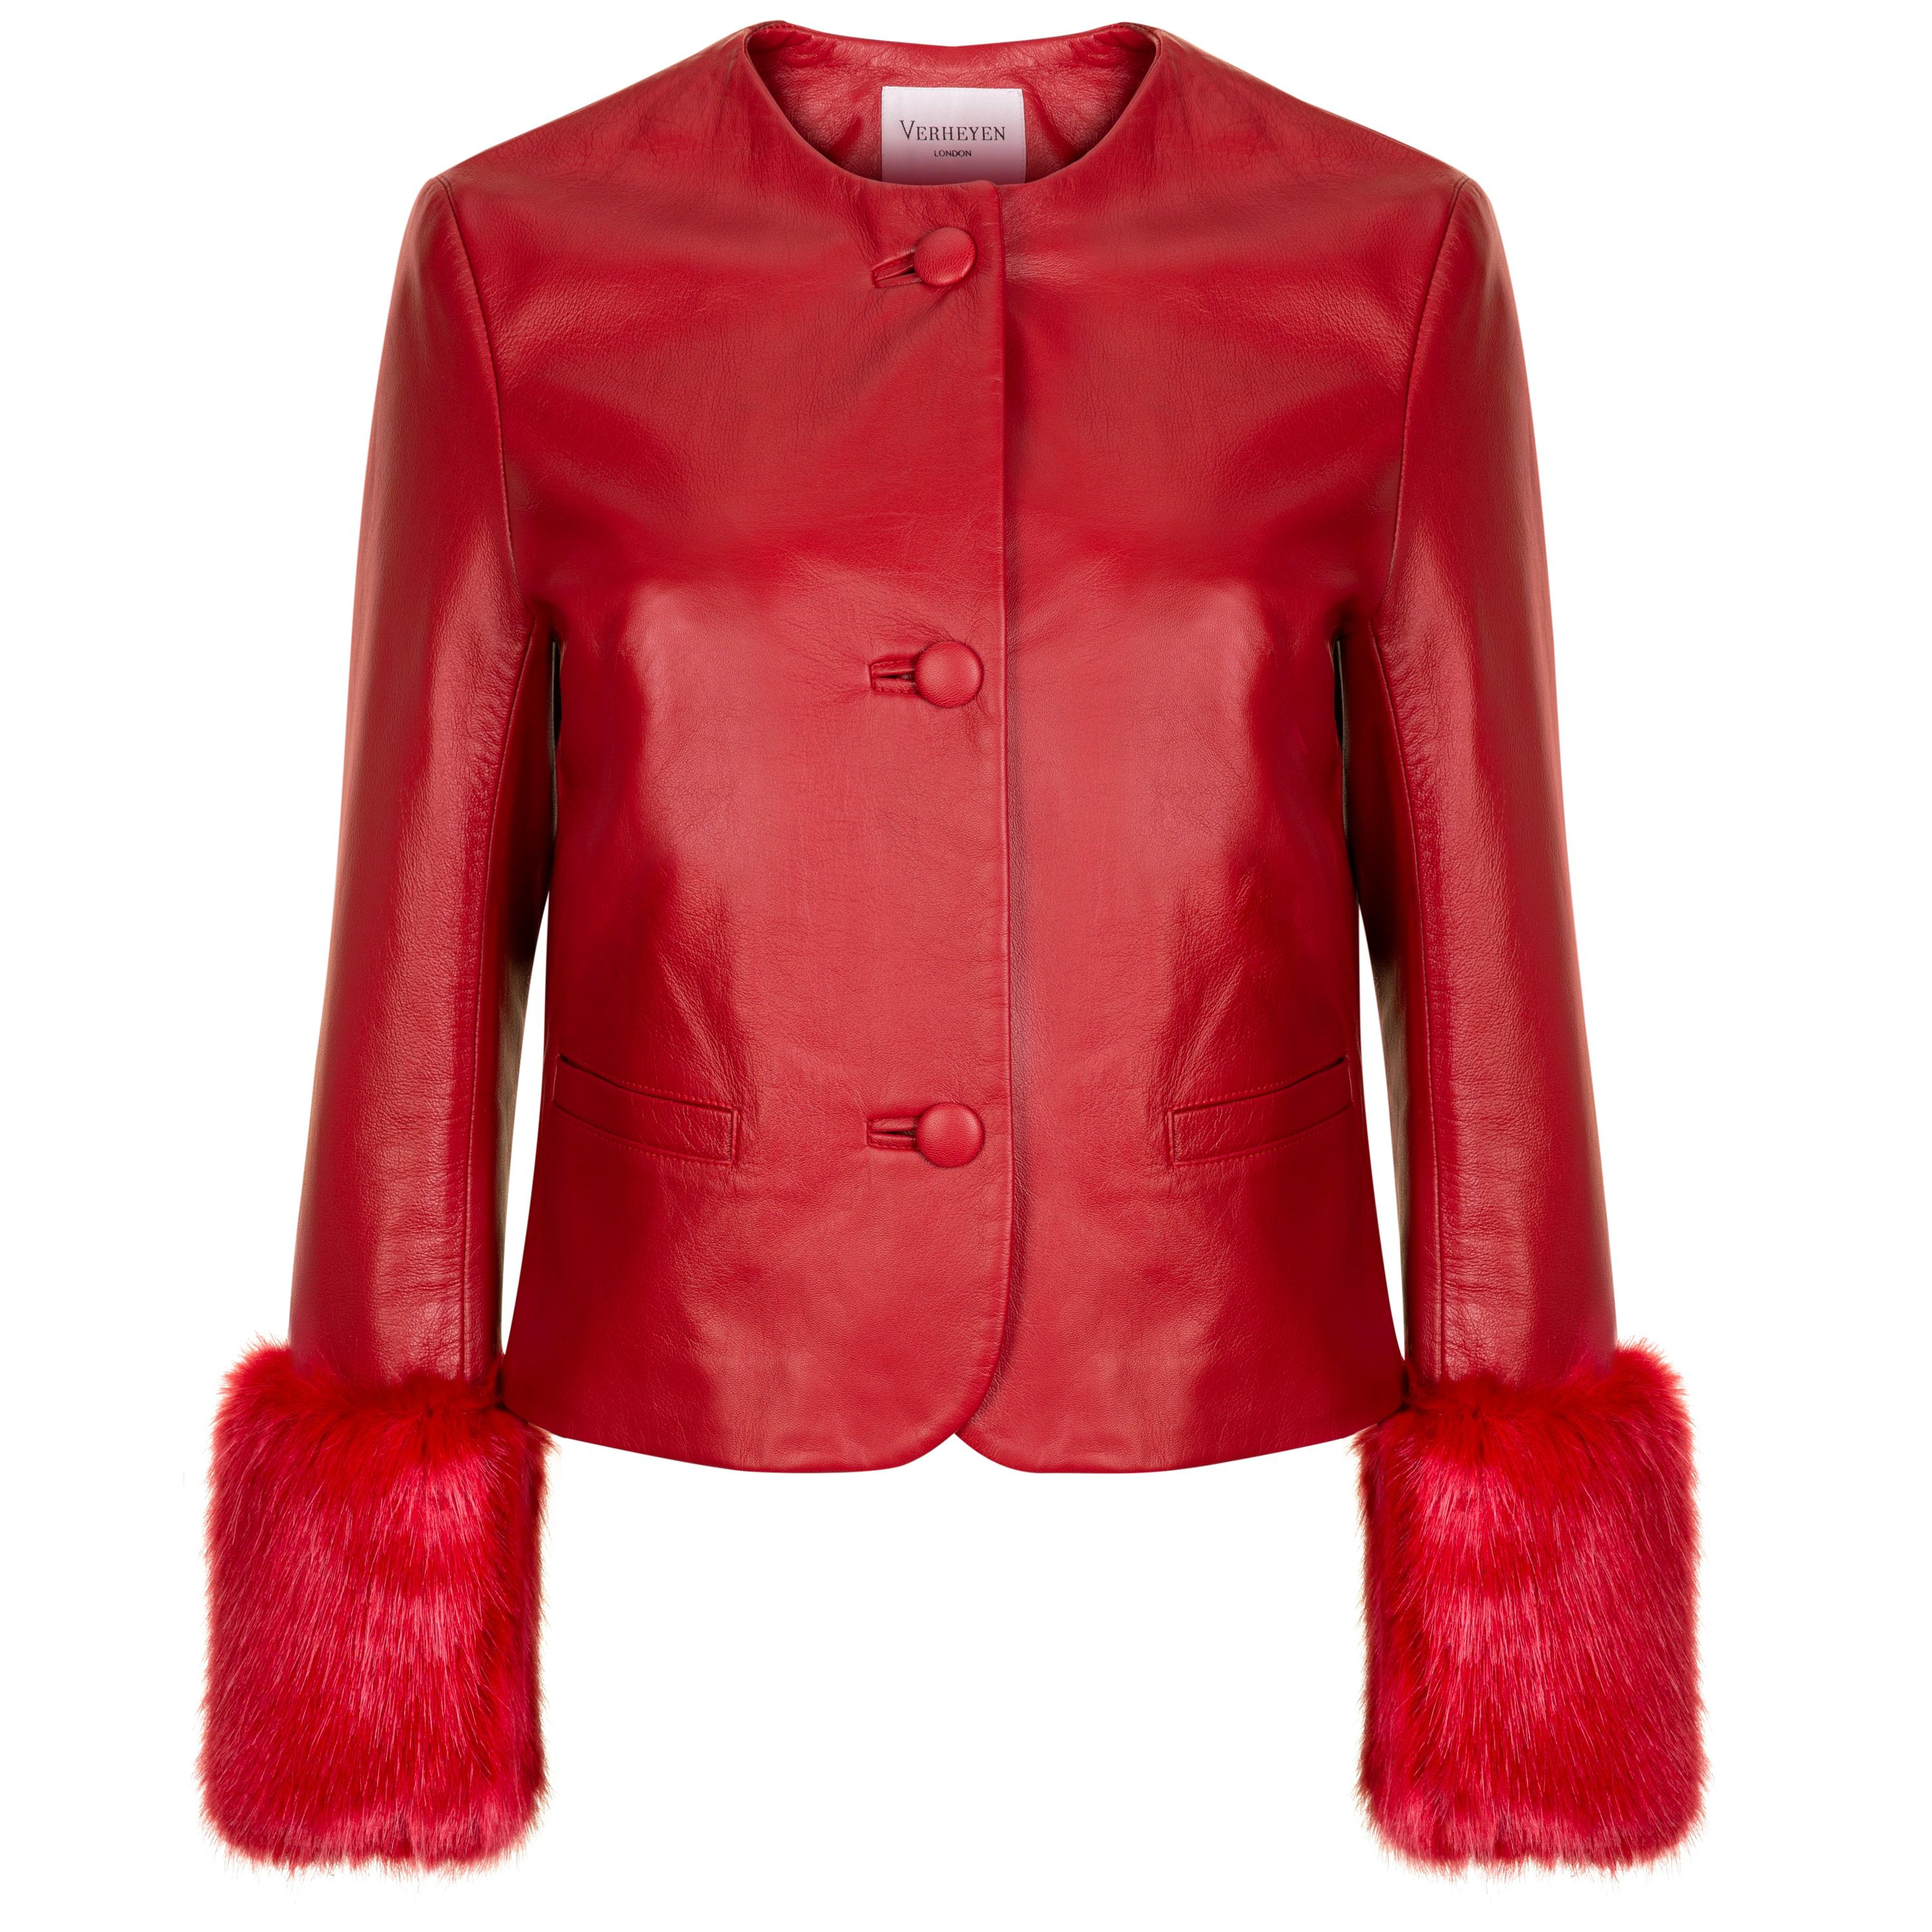 Verheyen Vita Cropped Jacket in Red Leather with Faux Fur - Size uk 6